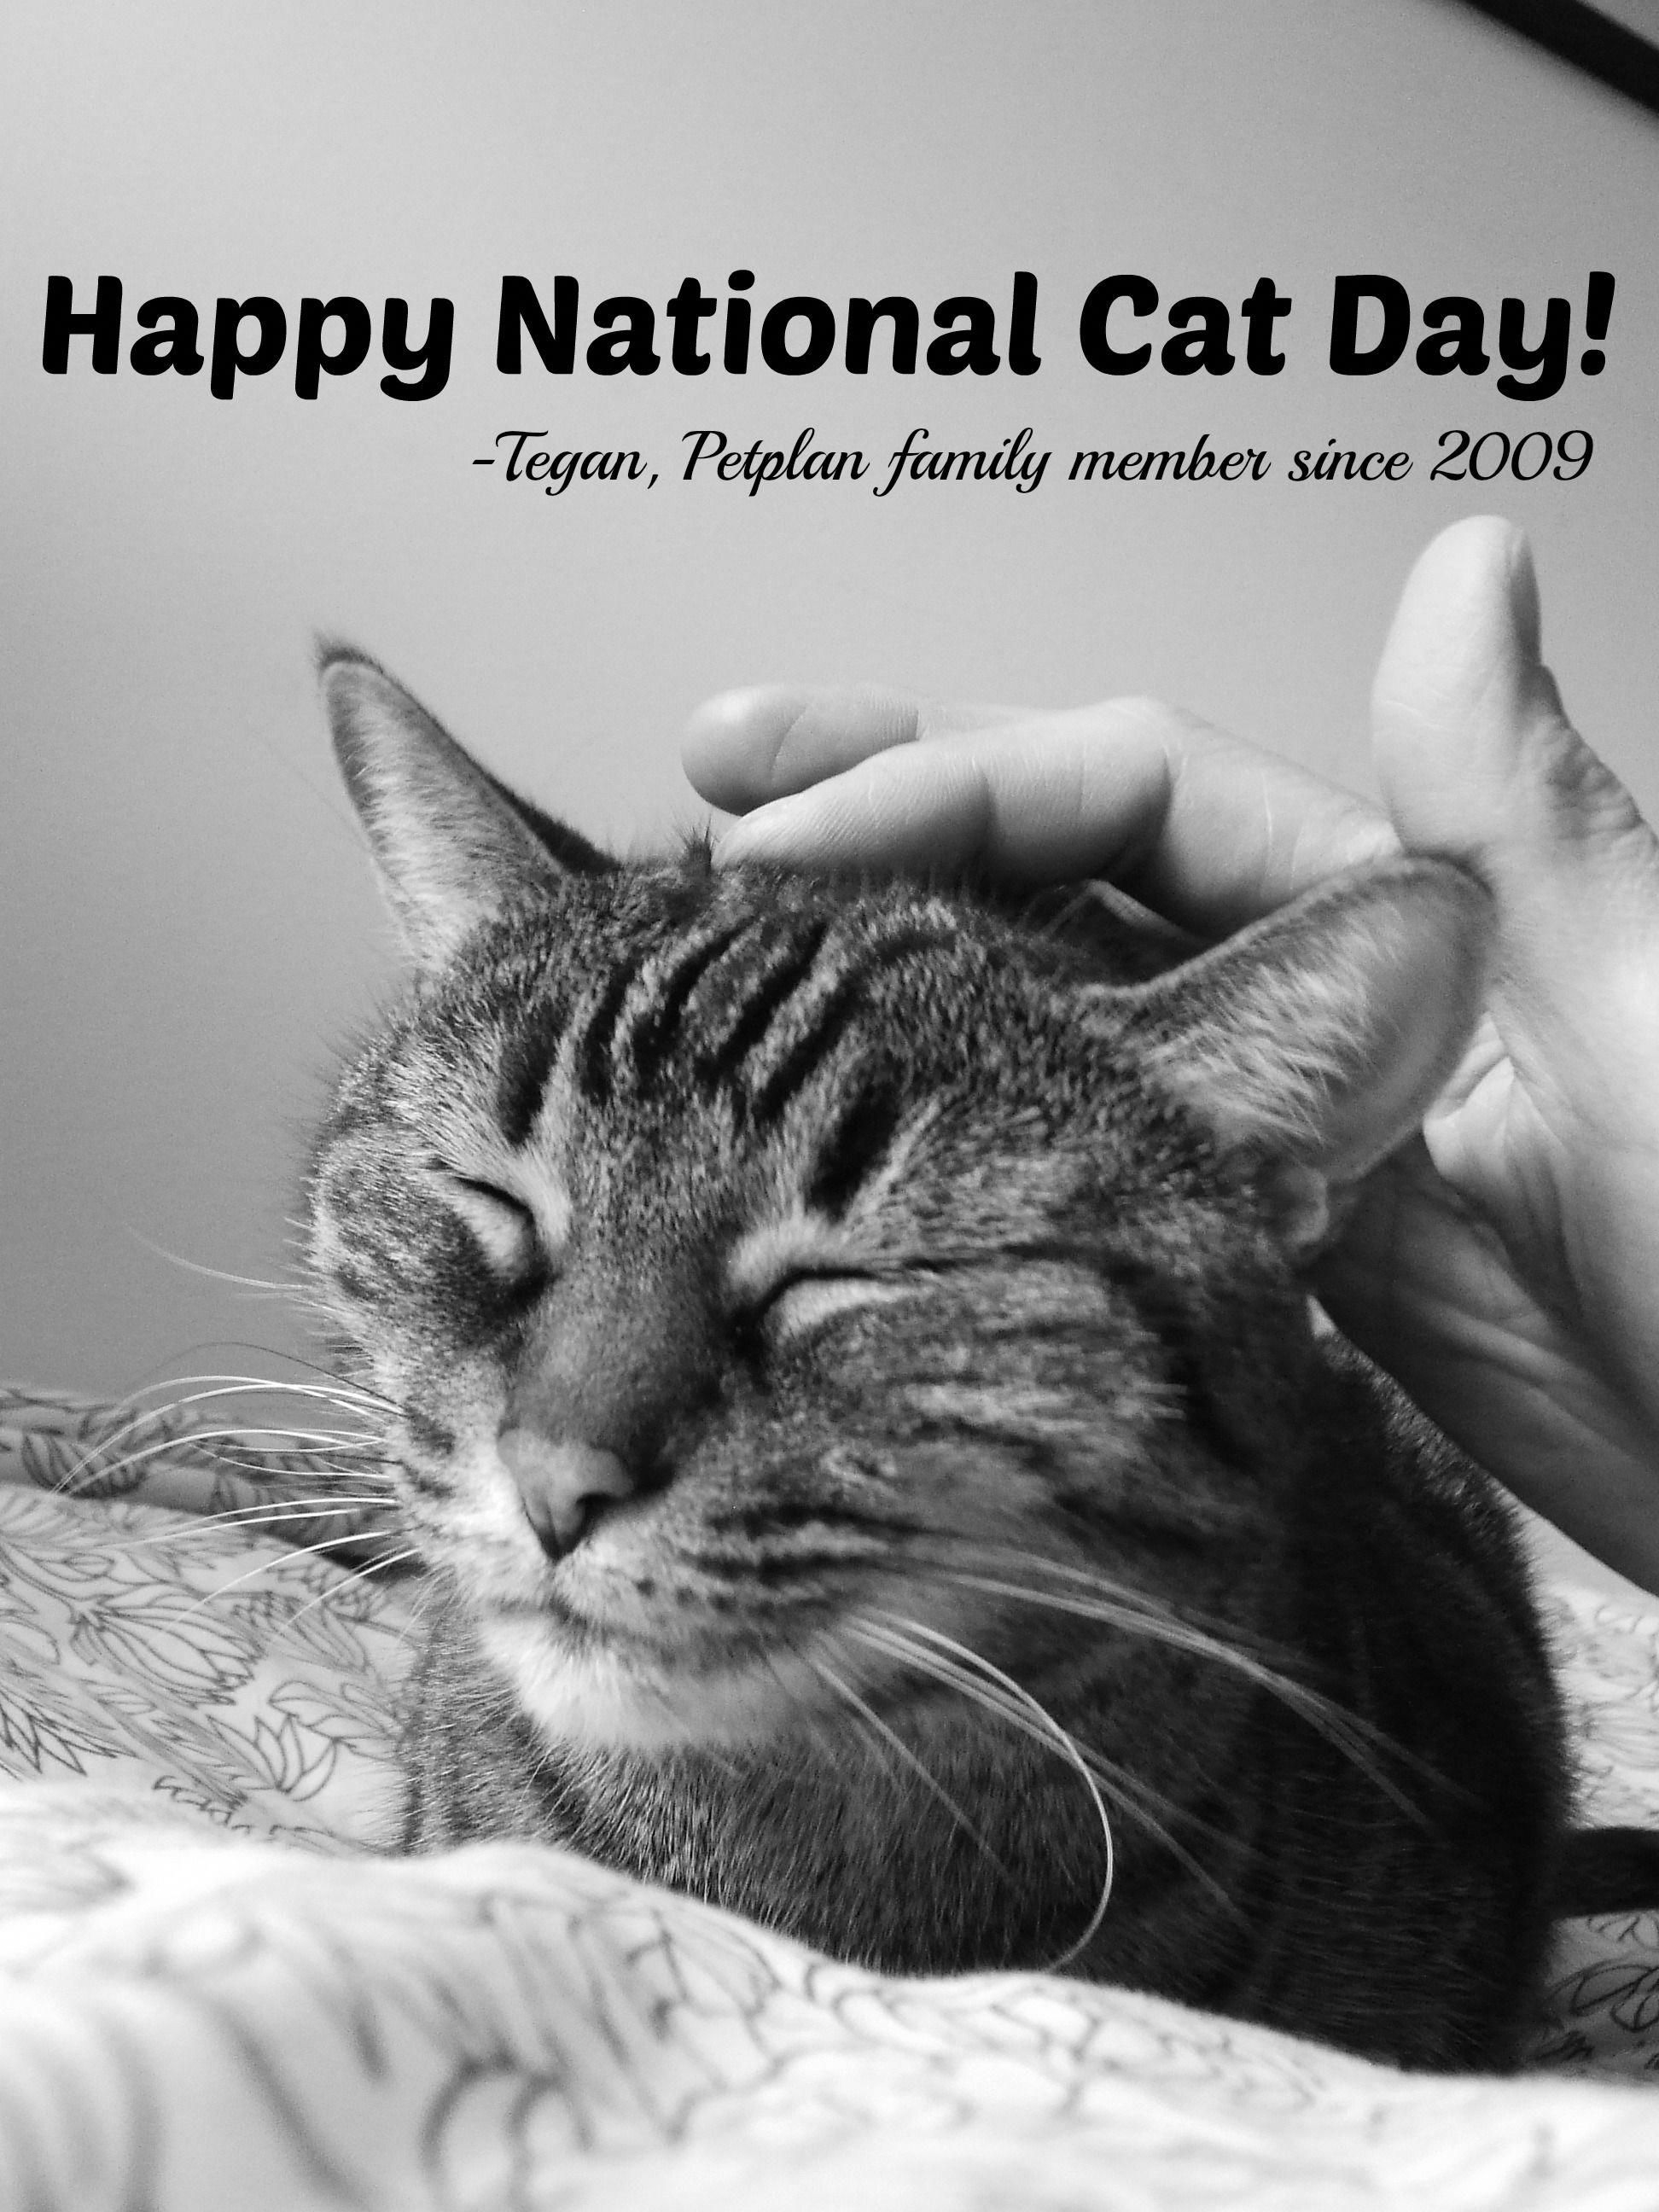 October 29 is National Cat Day! When it comes to